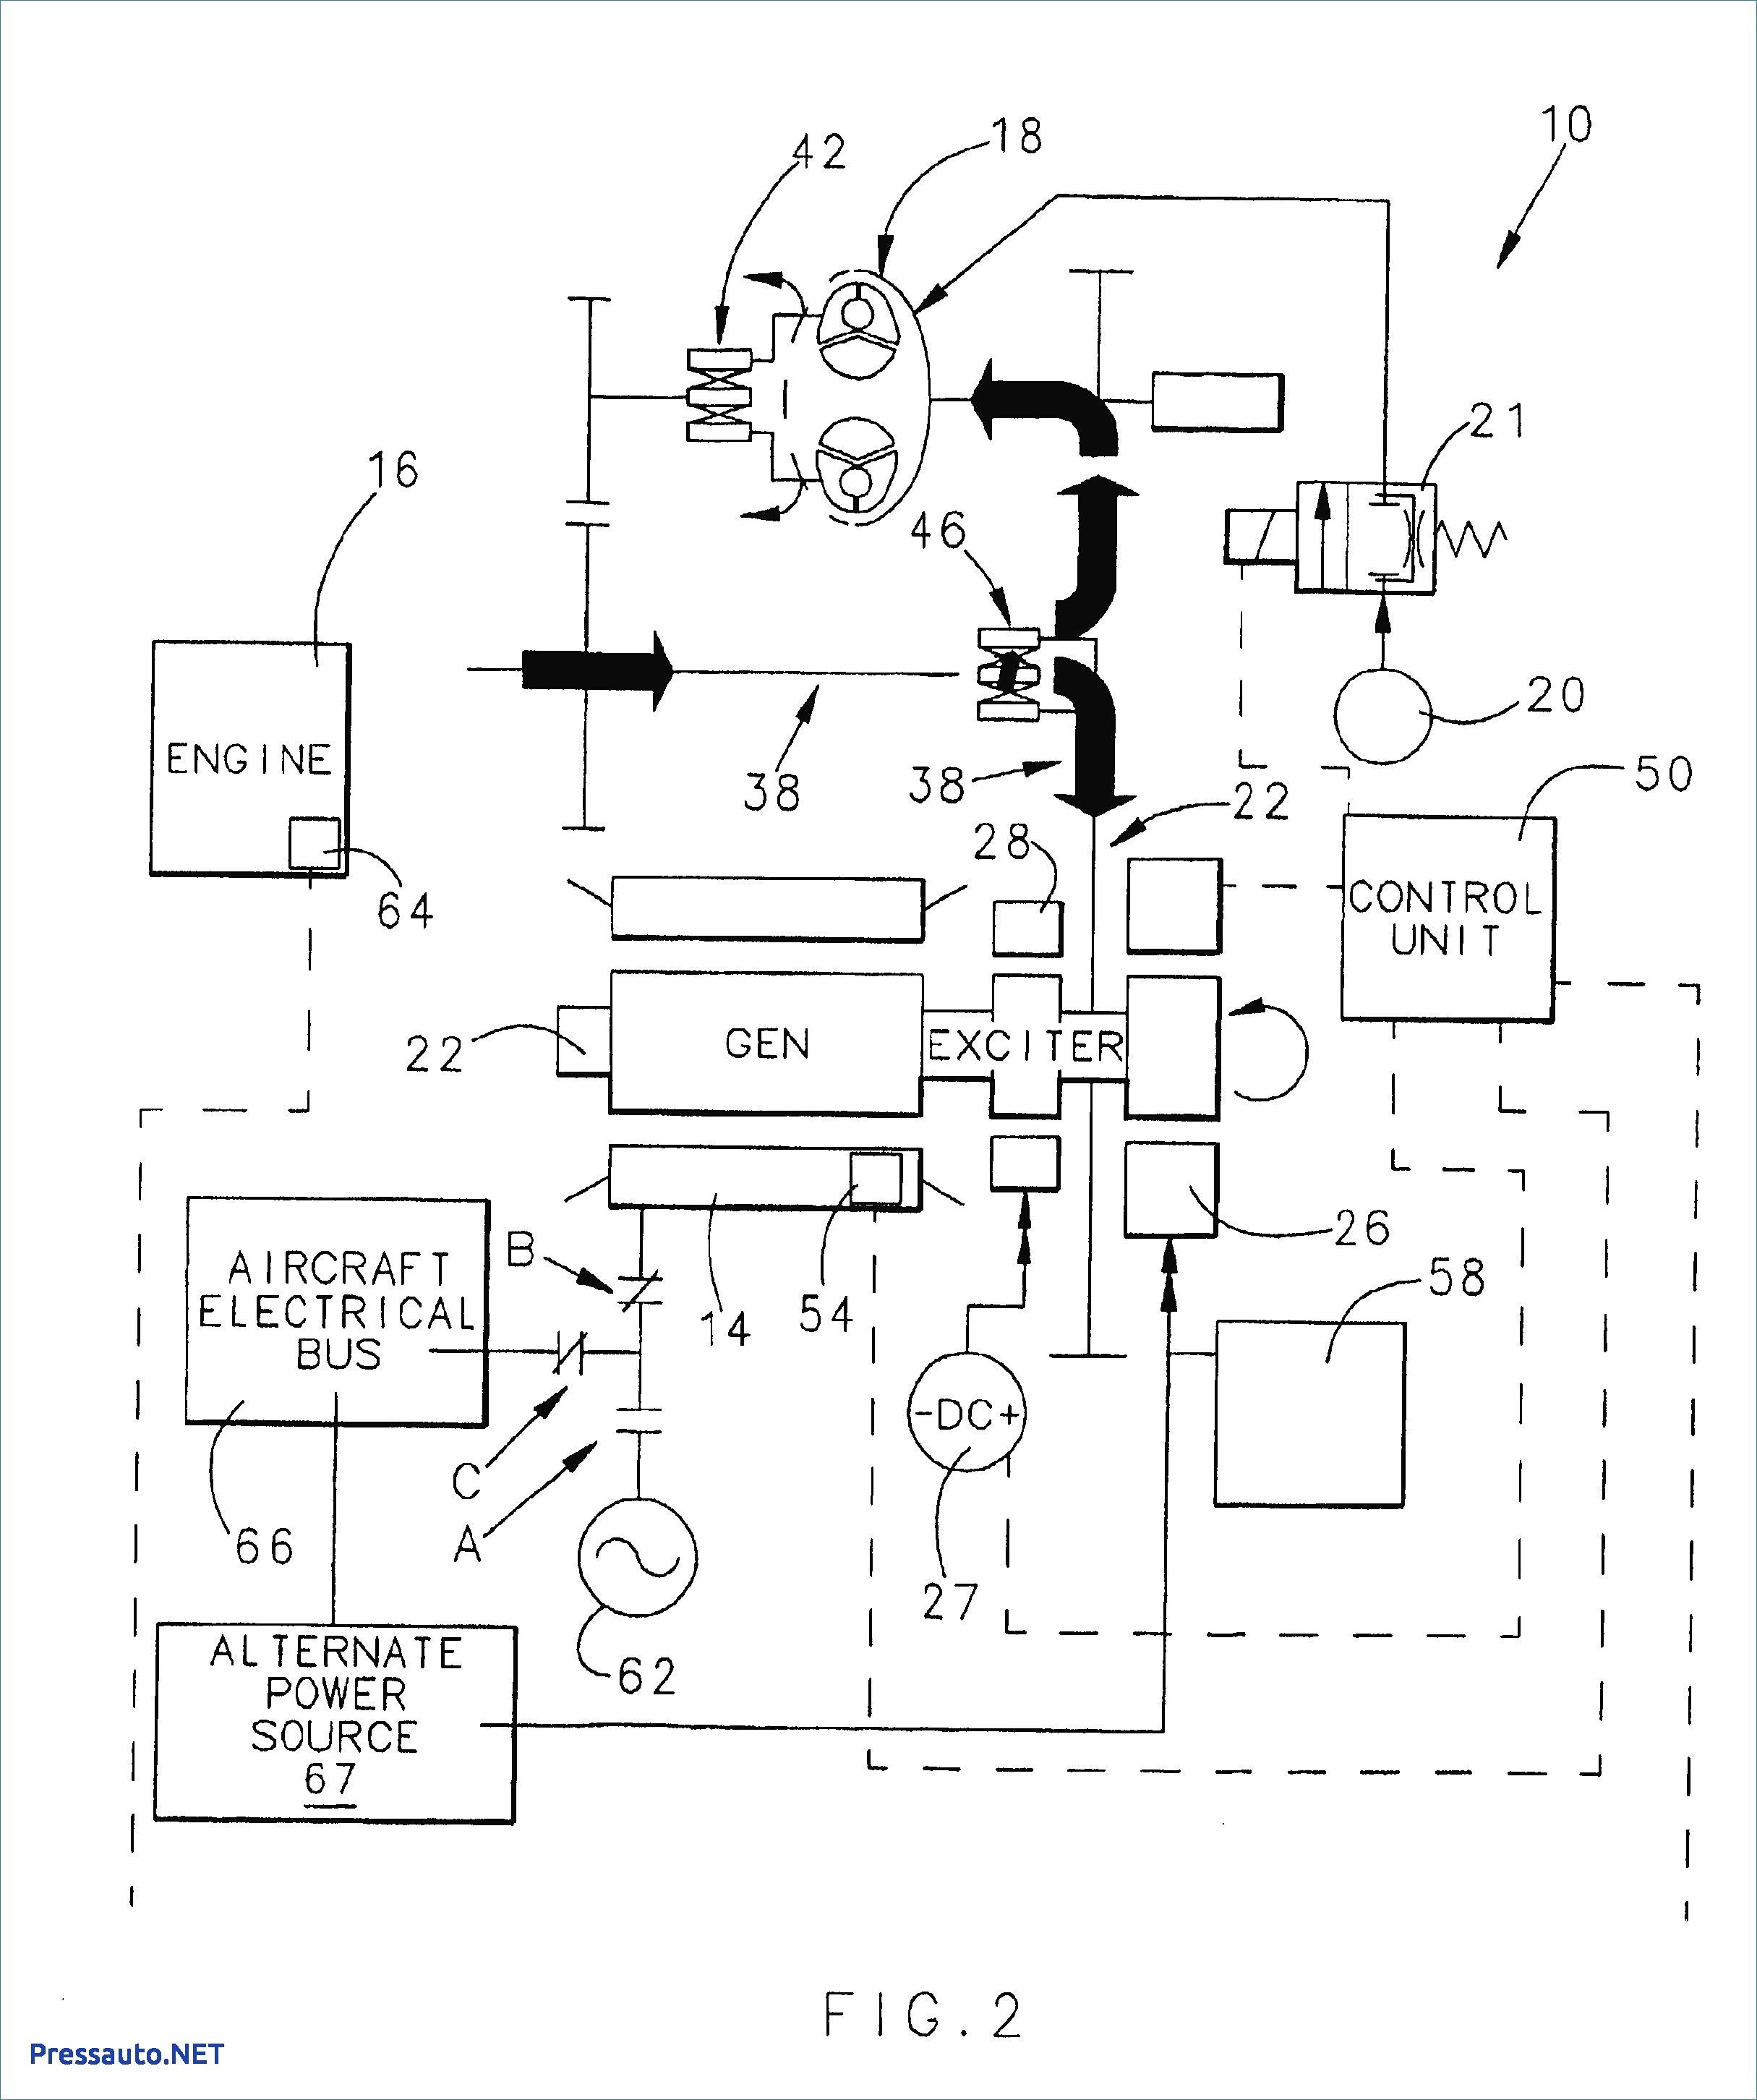 88 Ford F700 Alternator Wiring | Wiring Diagram  Ford Alternator Wiring Diagram on